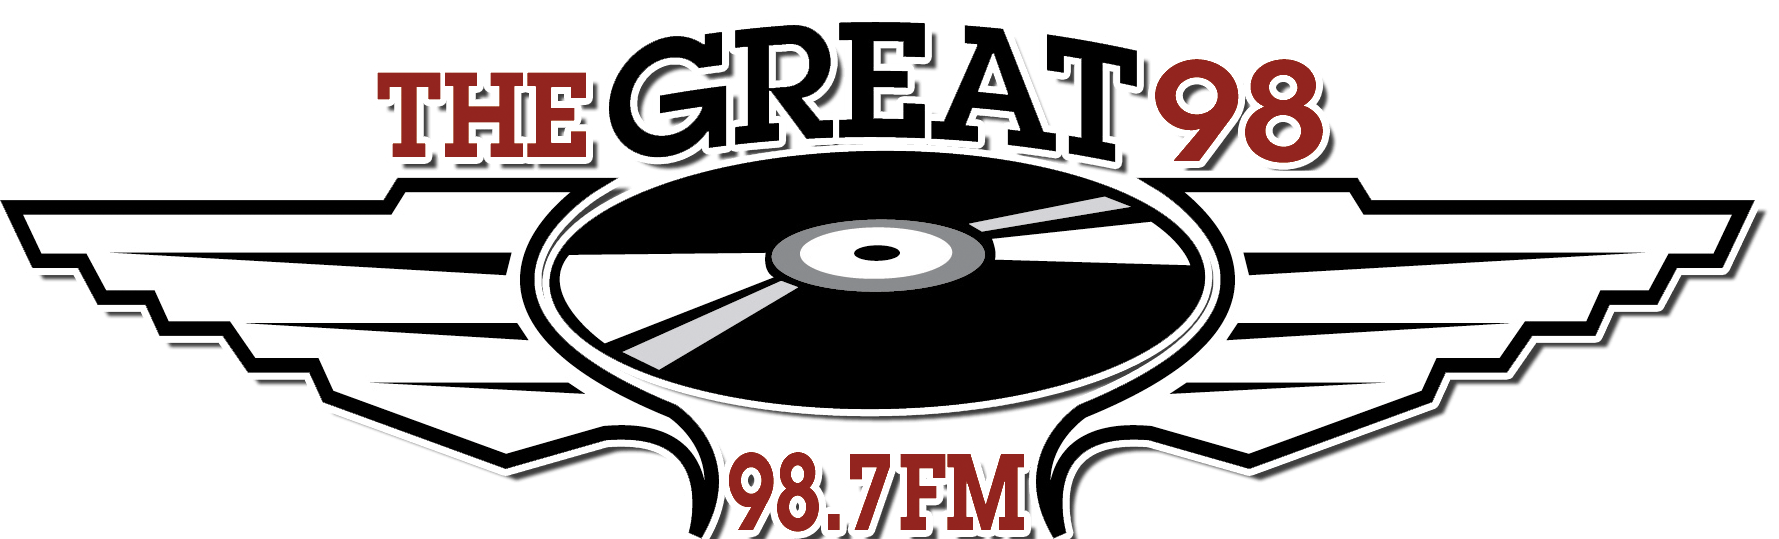 98 7 FM The Great 98 WMDC-FM | The Greatest Hits From The